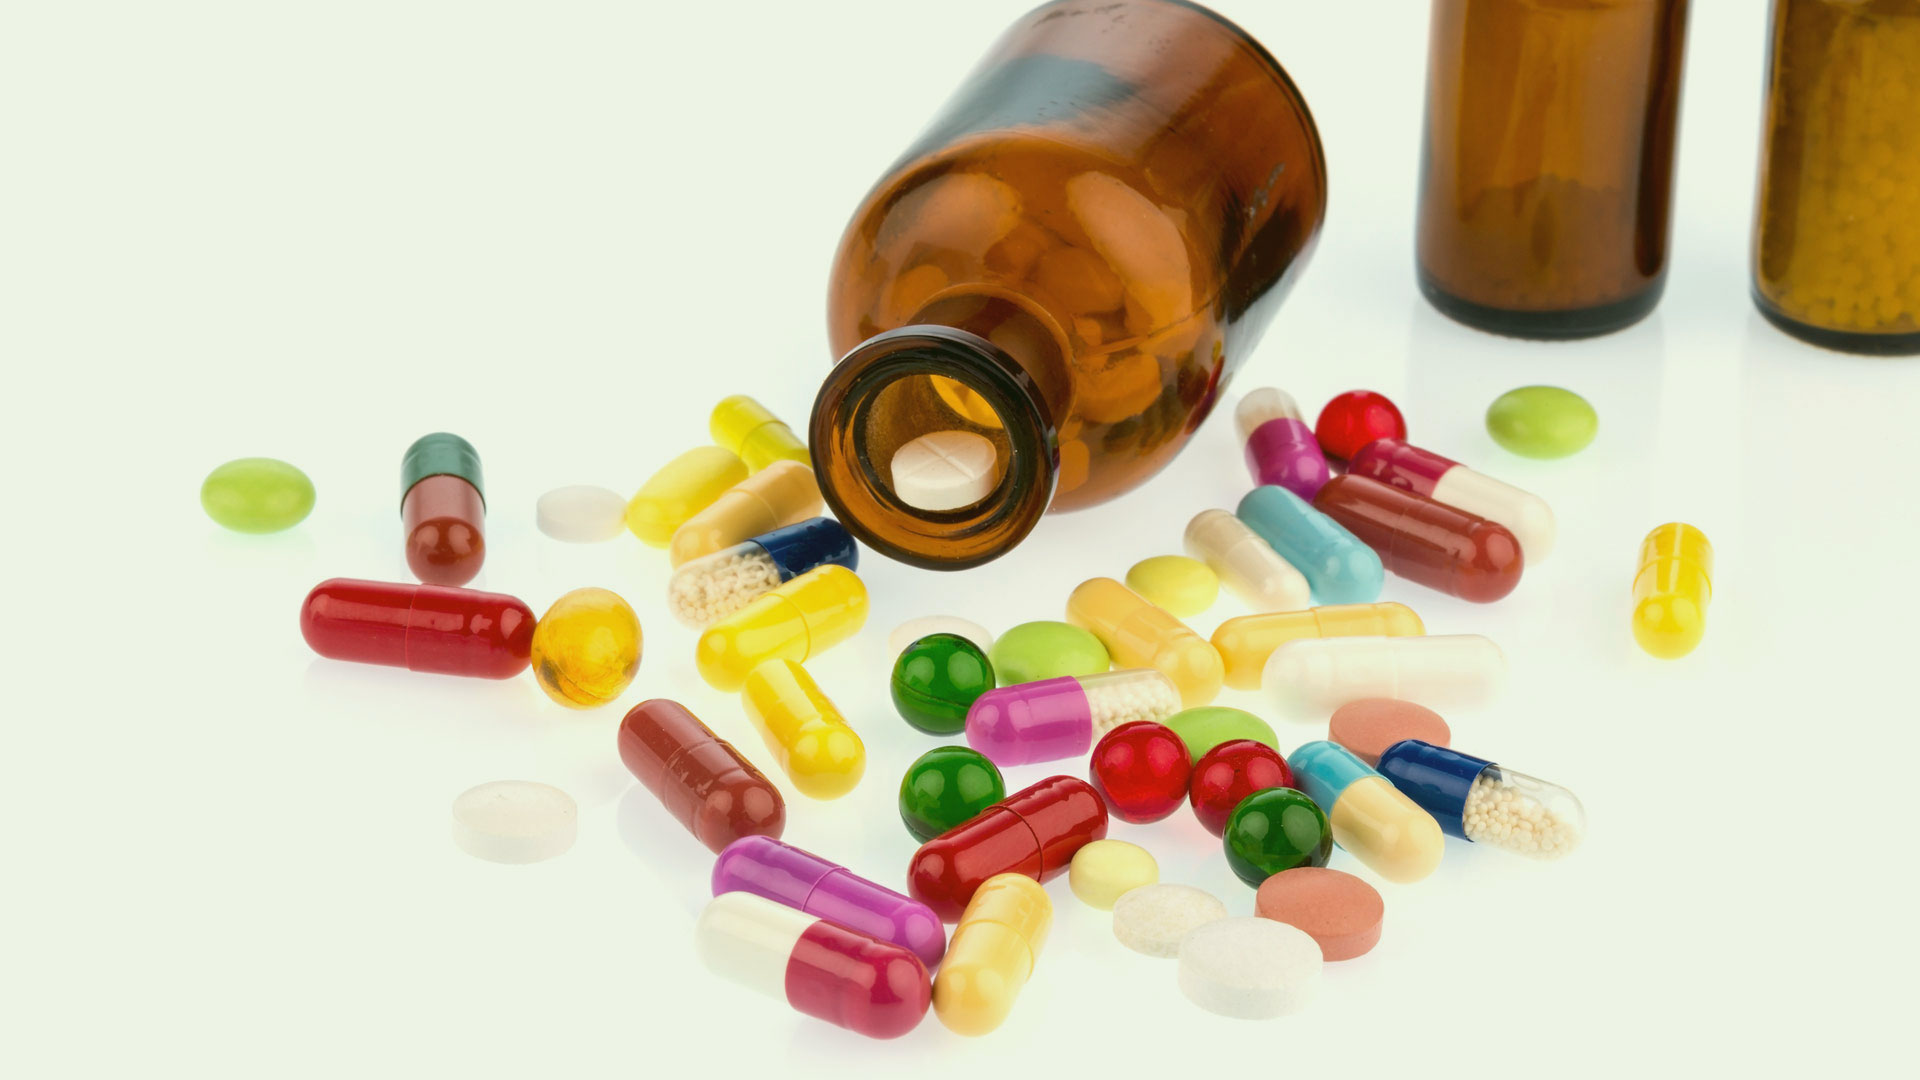 This is the image which is related to Prescription Drug Abuse